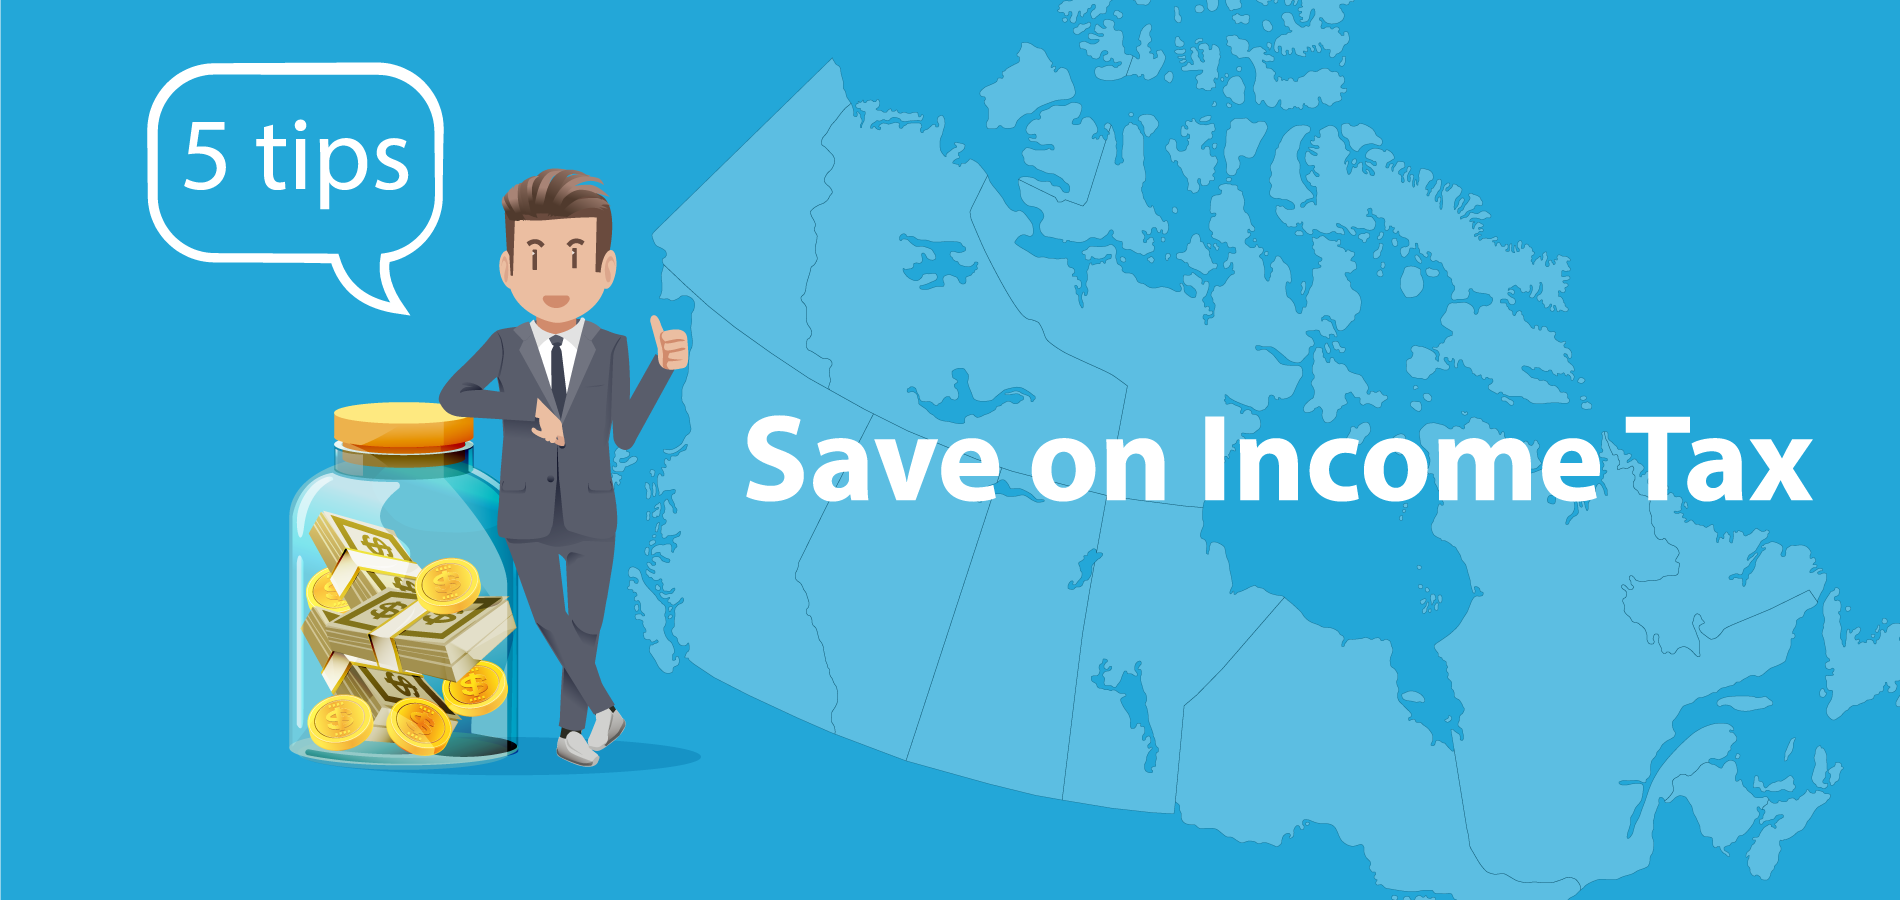 5 tips on how to save on income tax